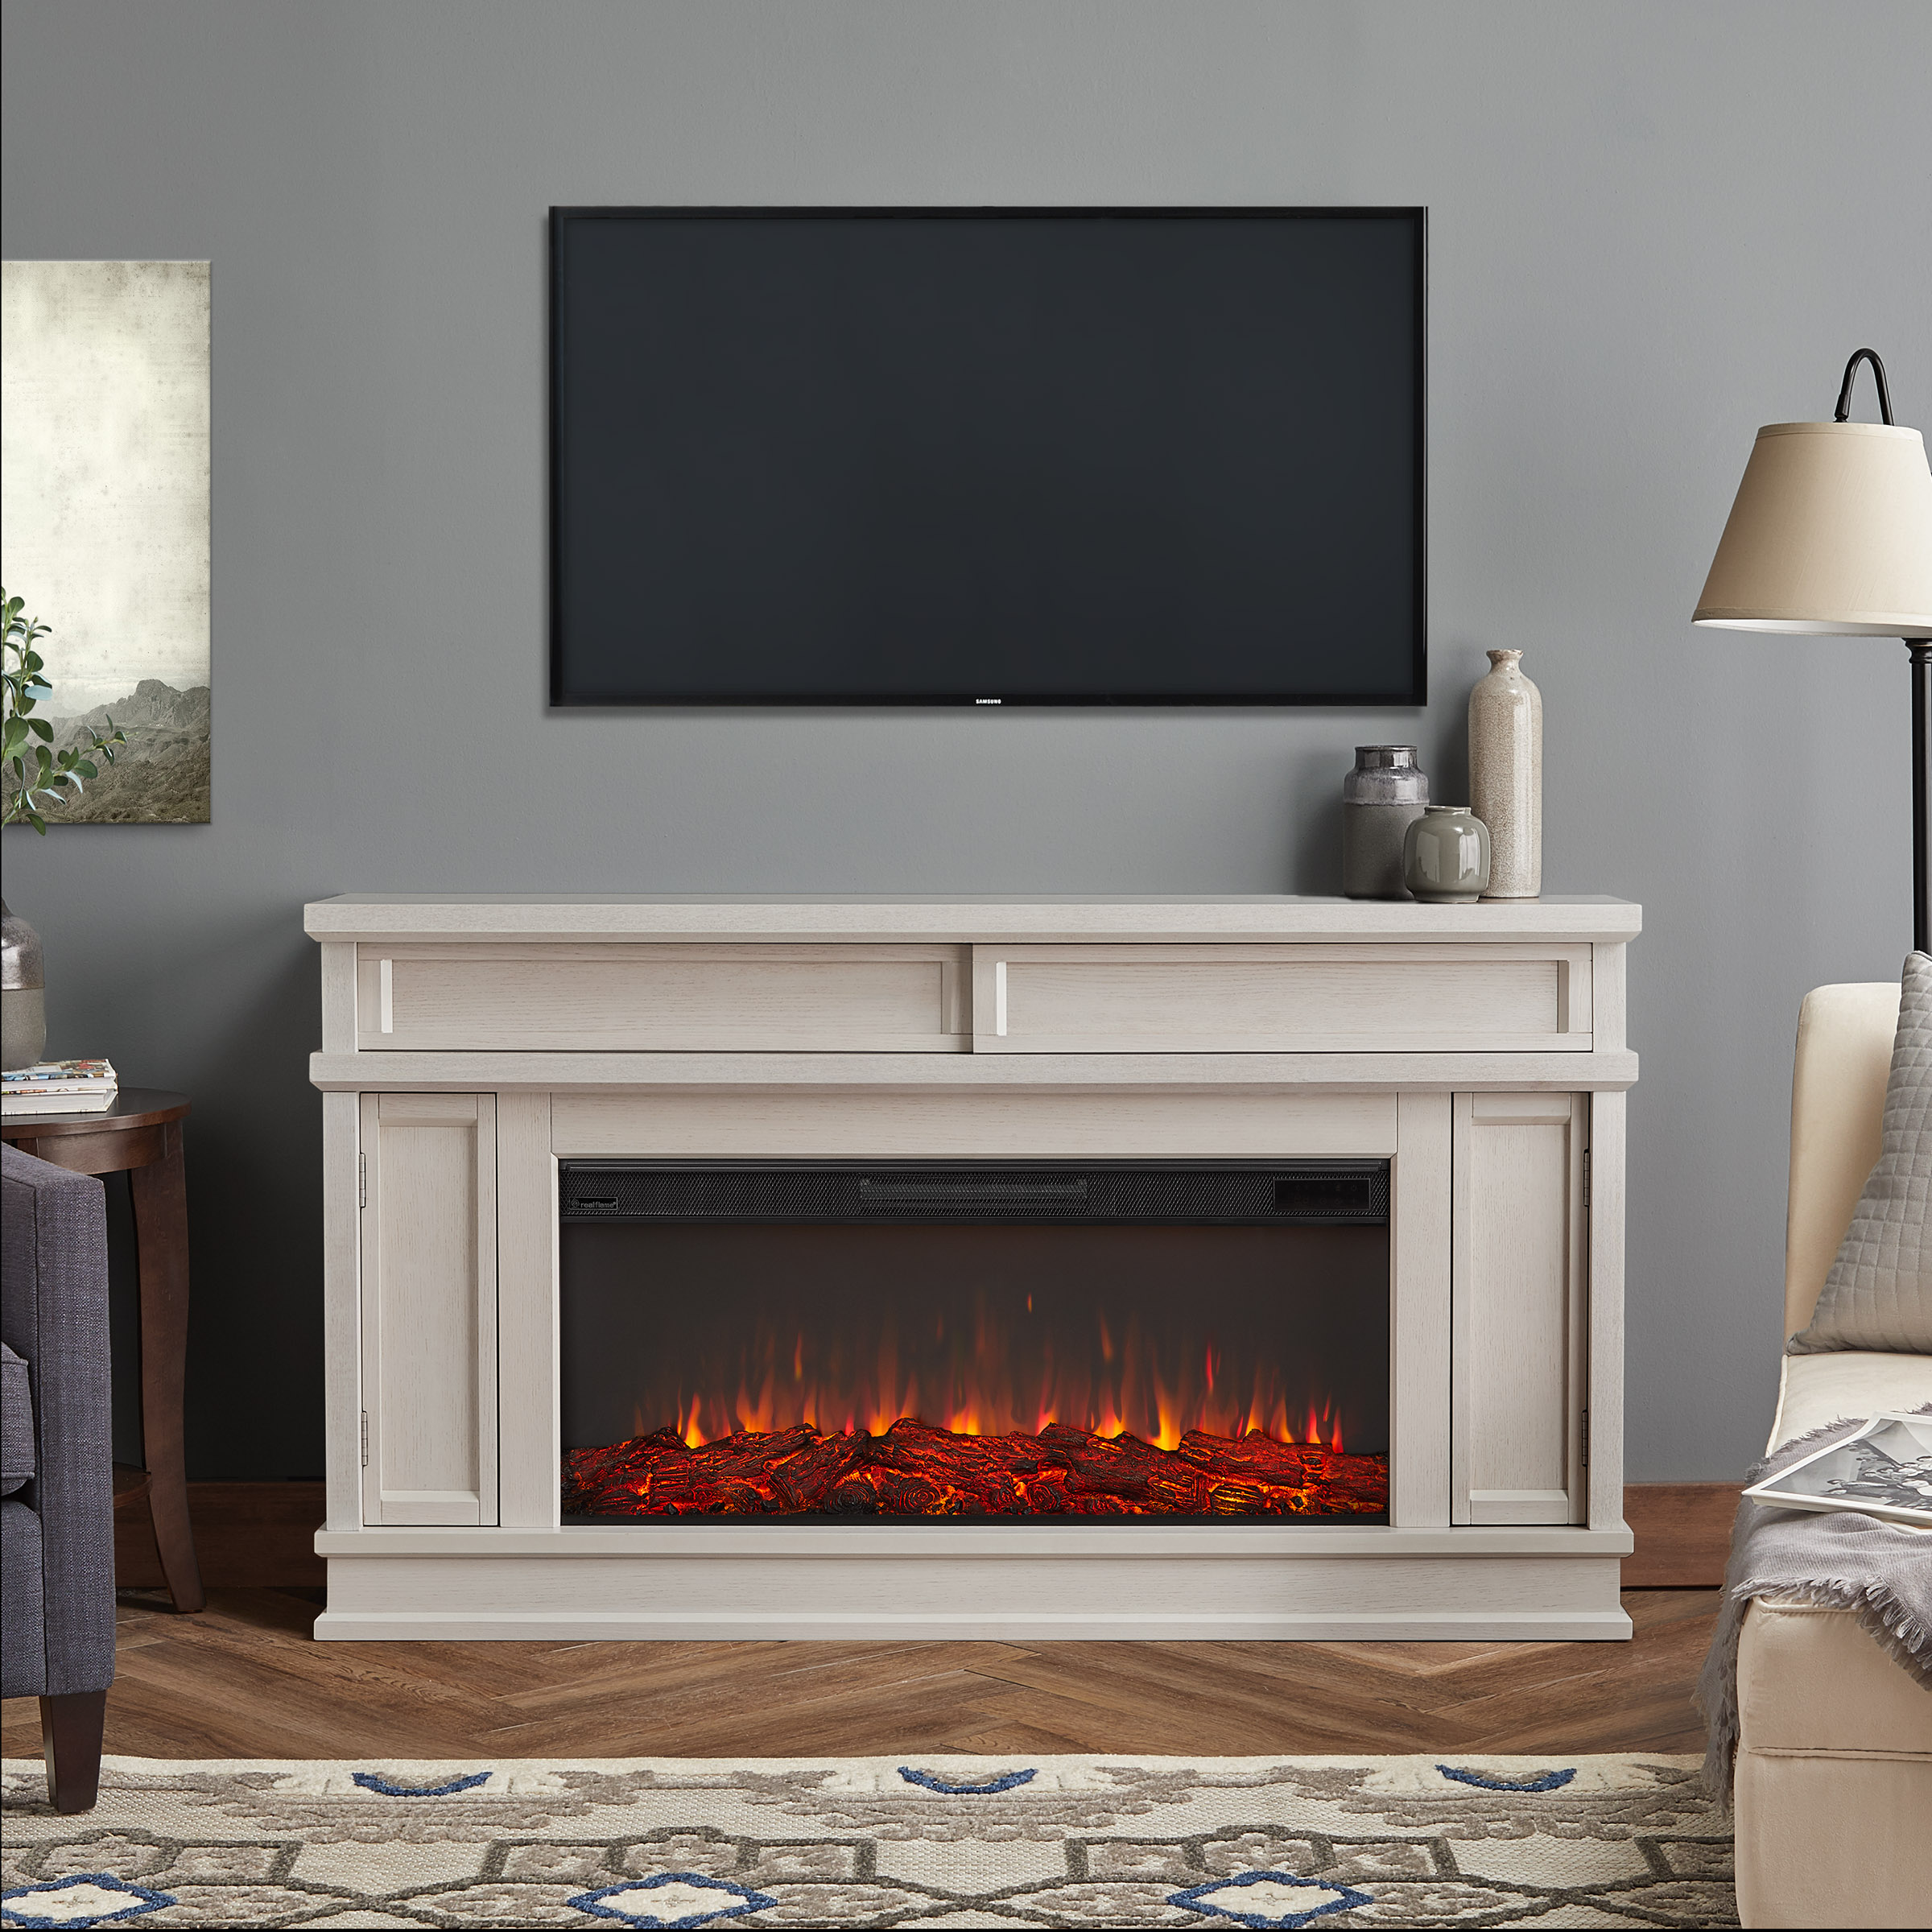 Awe Inspiring 60 Torrey Bone White Electric Fireplace Beutiful Home Inspiration Truamahrainfo